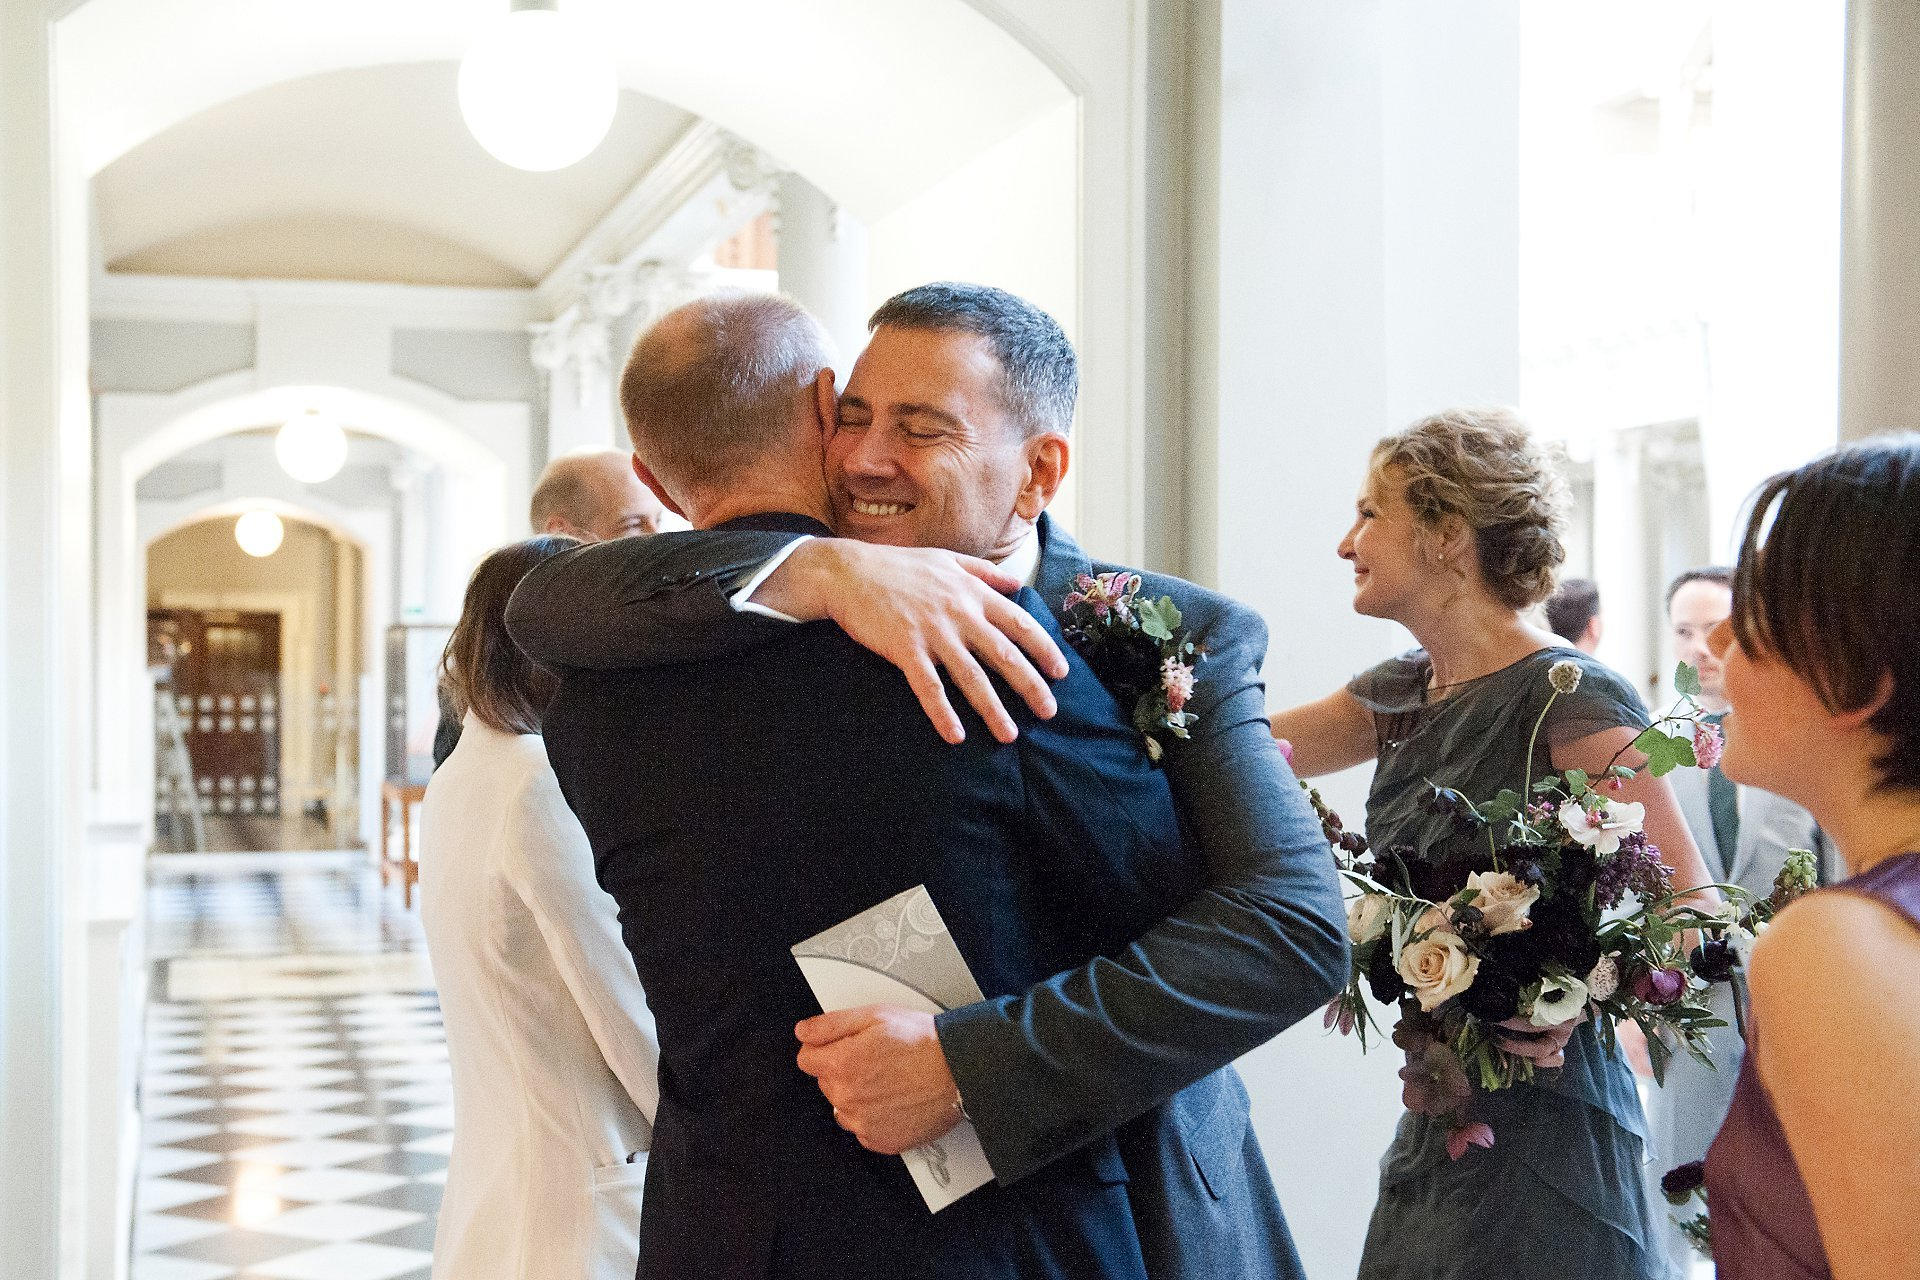 Groom hugs his friend after getting married at Woolwich Town Hall